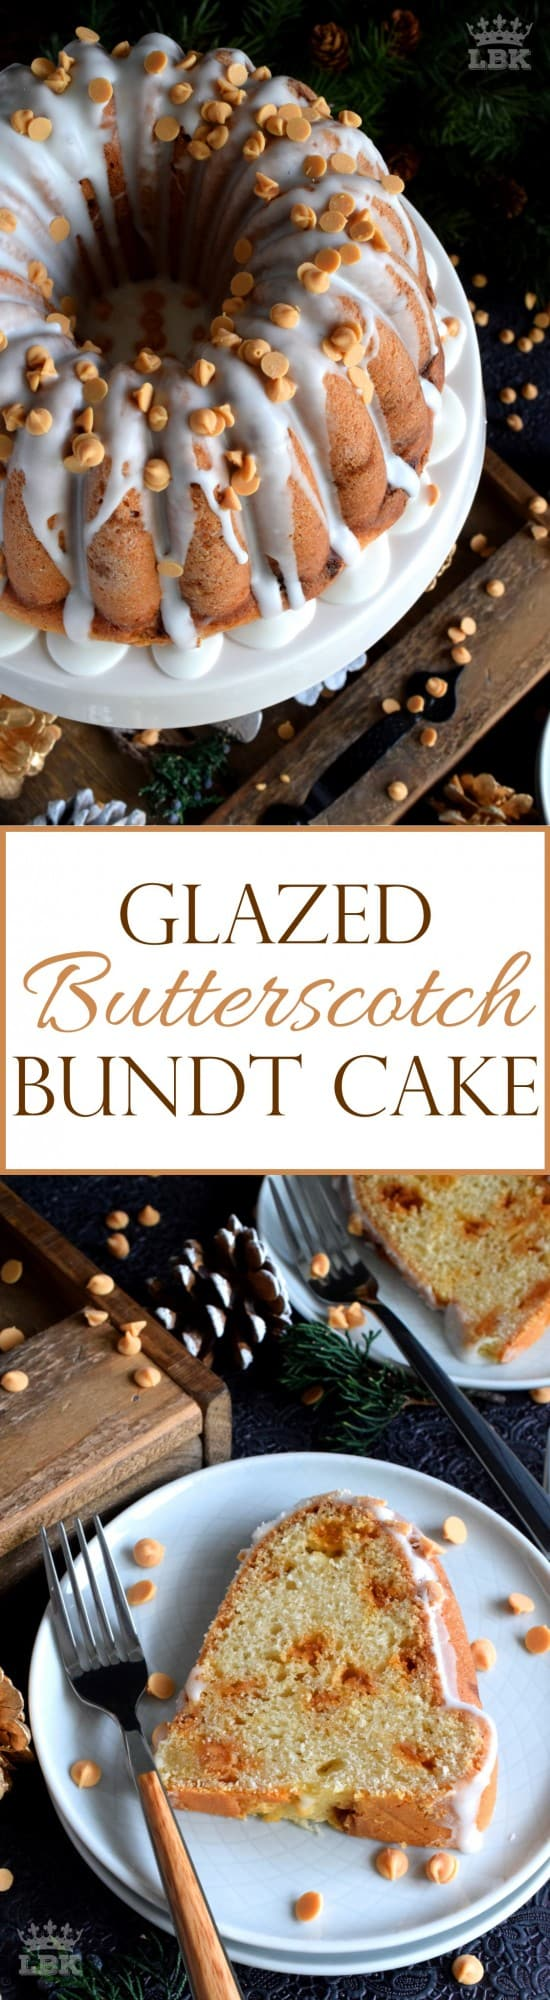 Glazed Butterscotch Chip Bundt Cake - Butterscotch is sweet and indulgent, but it's Christmastime and calories don't count, so live it up with this Glazed Butterscotch Chip Bundt Cake!#butterscotch #bundt #cake #glazed #bundtbakers #Christmas #holiday